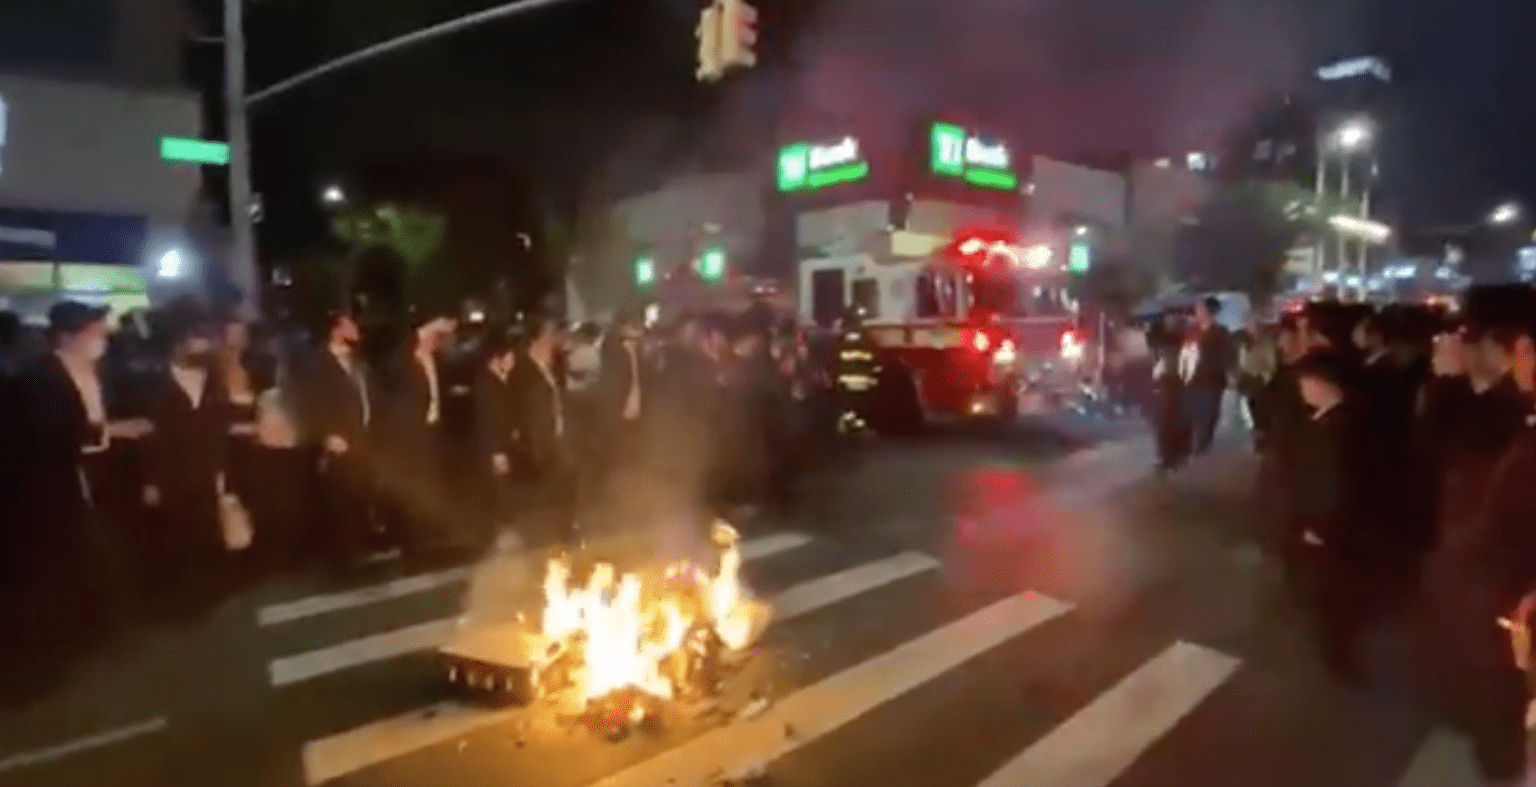 Orthodox Jews hold fiery, but mostly peaceful mask burning protest